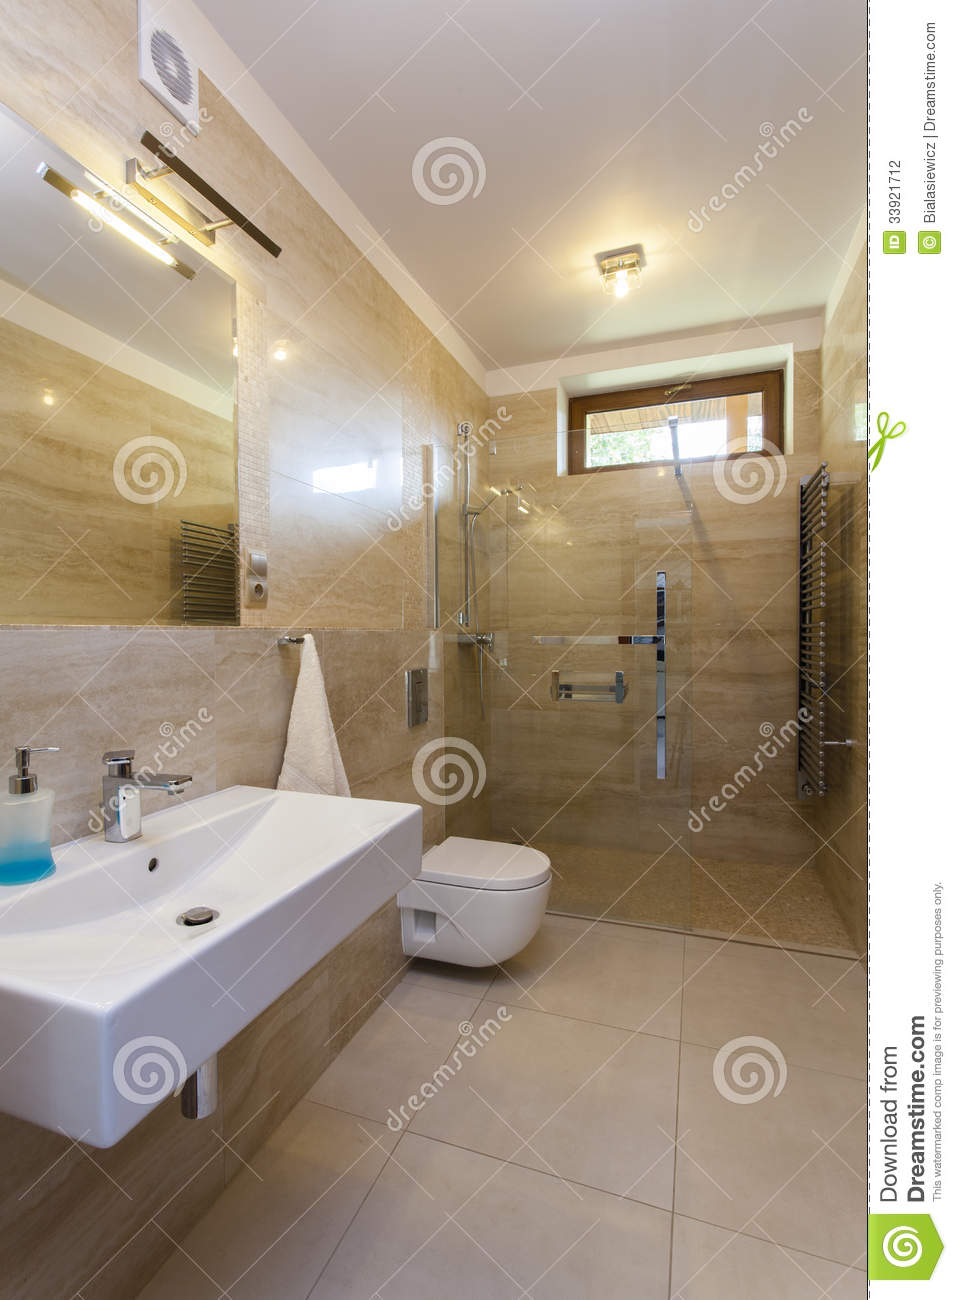 Salle De Bains De Travertin Photo Stock Image 33921712